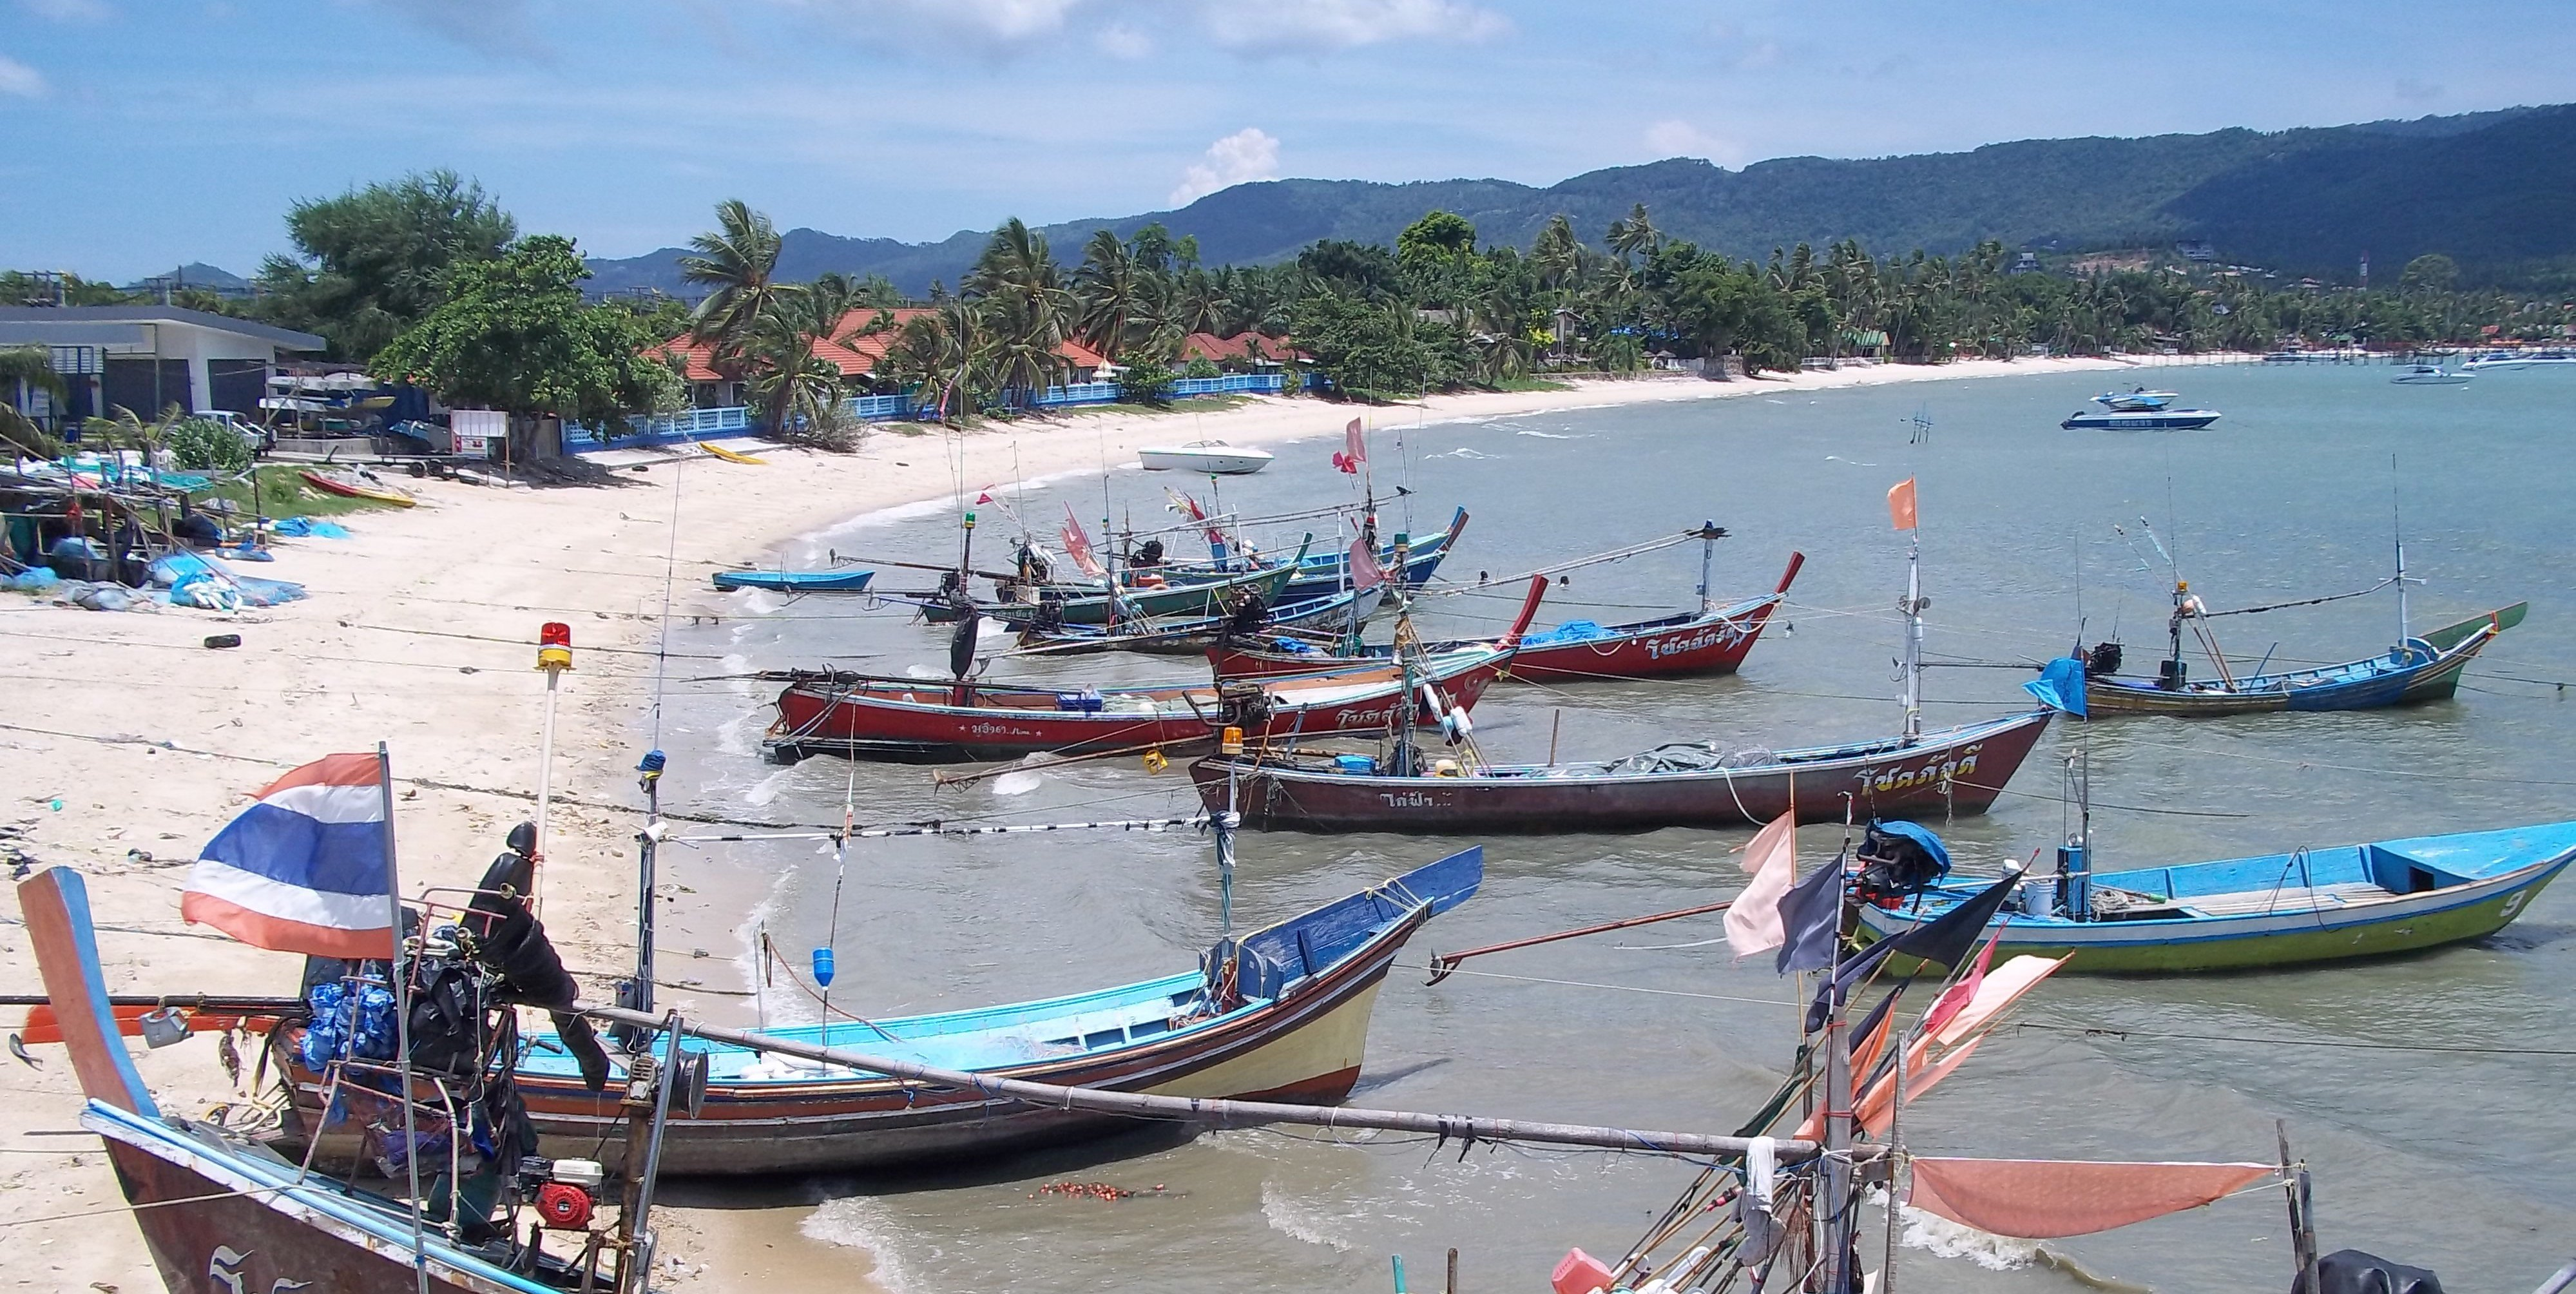 Longtail Boats in Koh Samui